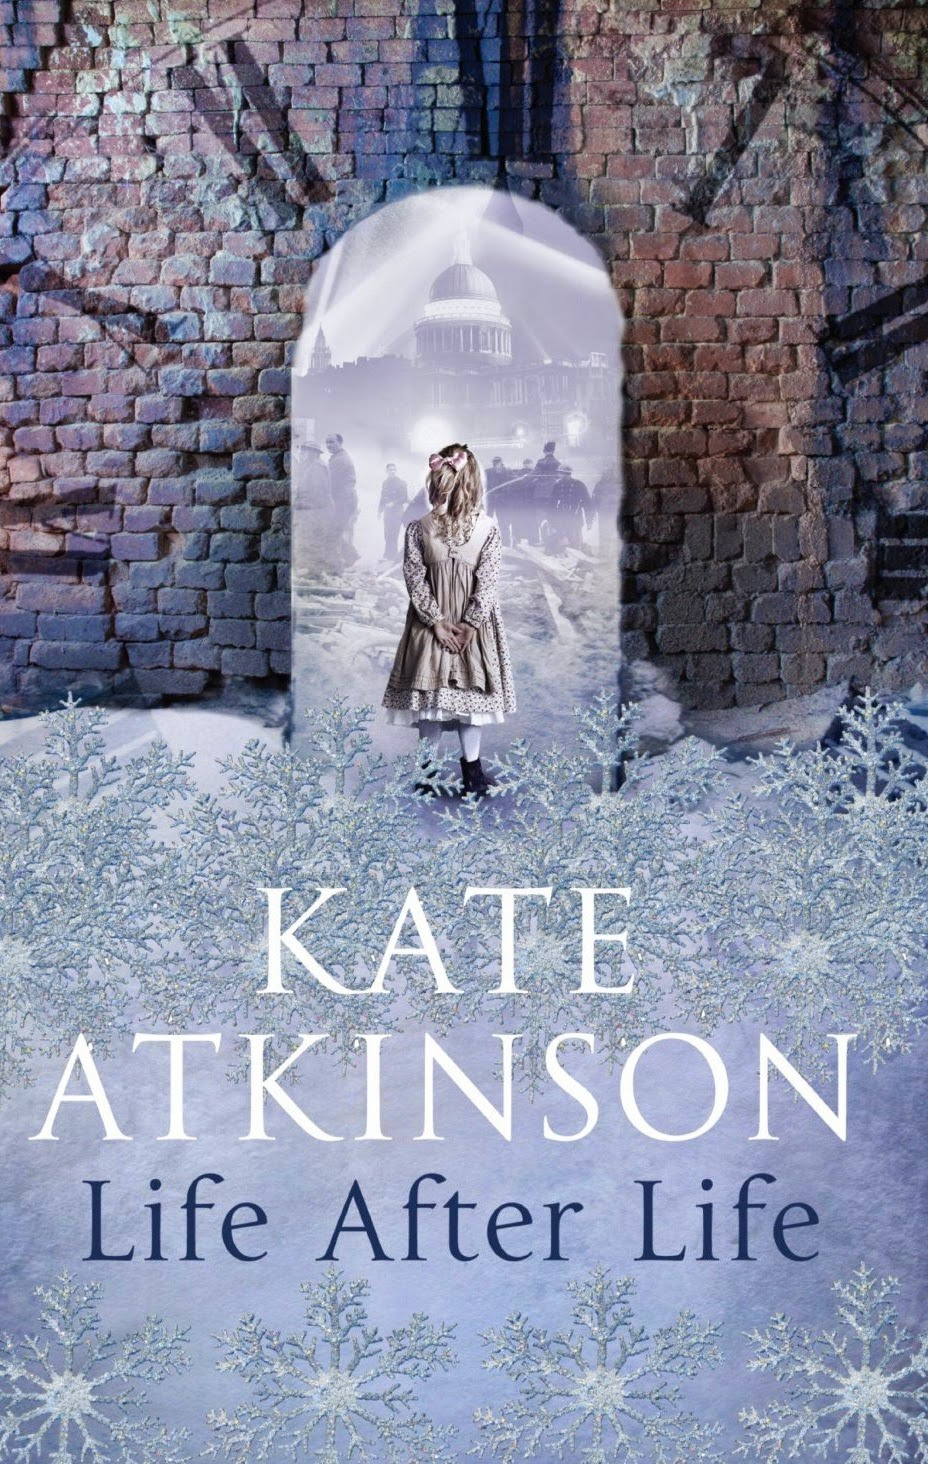 Book Review | Life After Life by Kate Atkinson